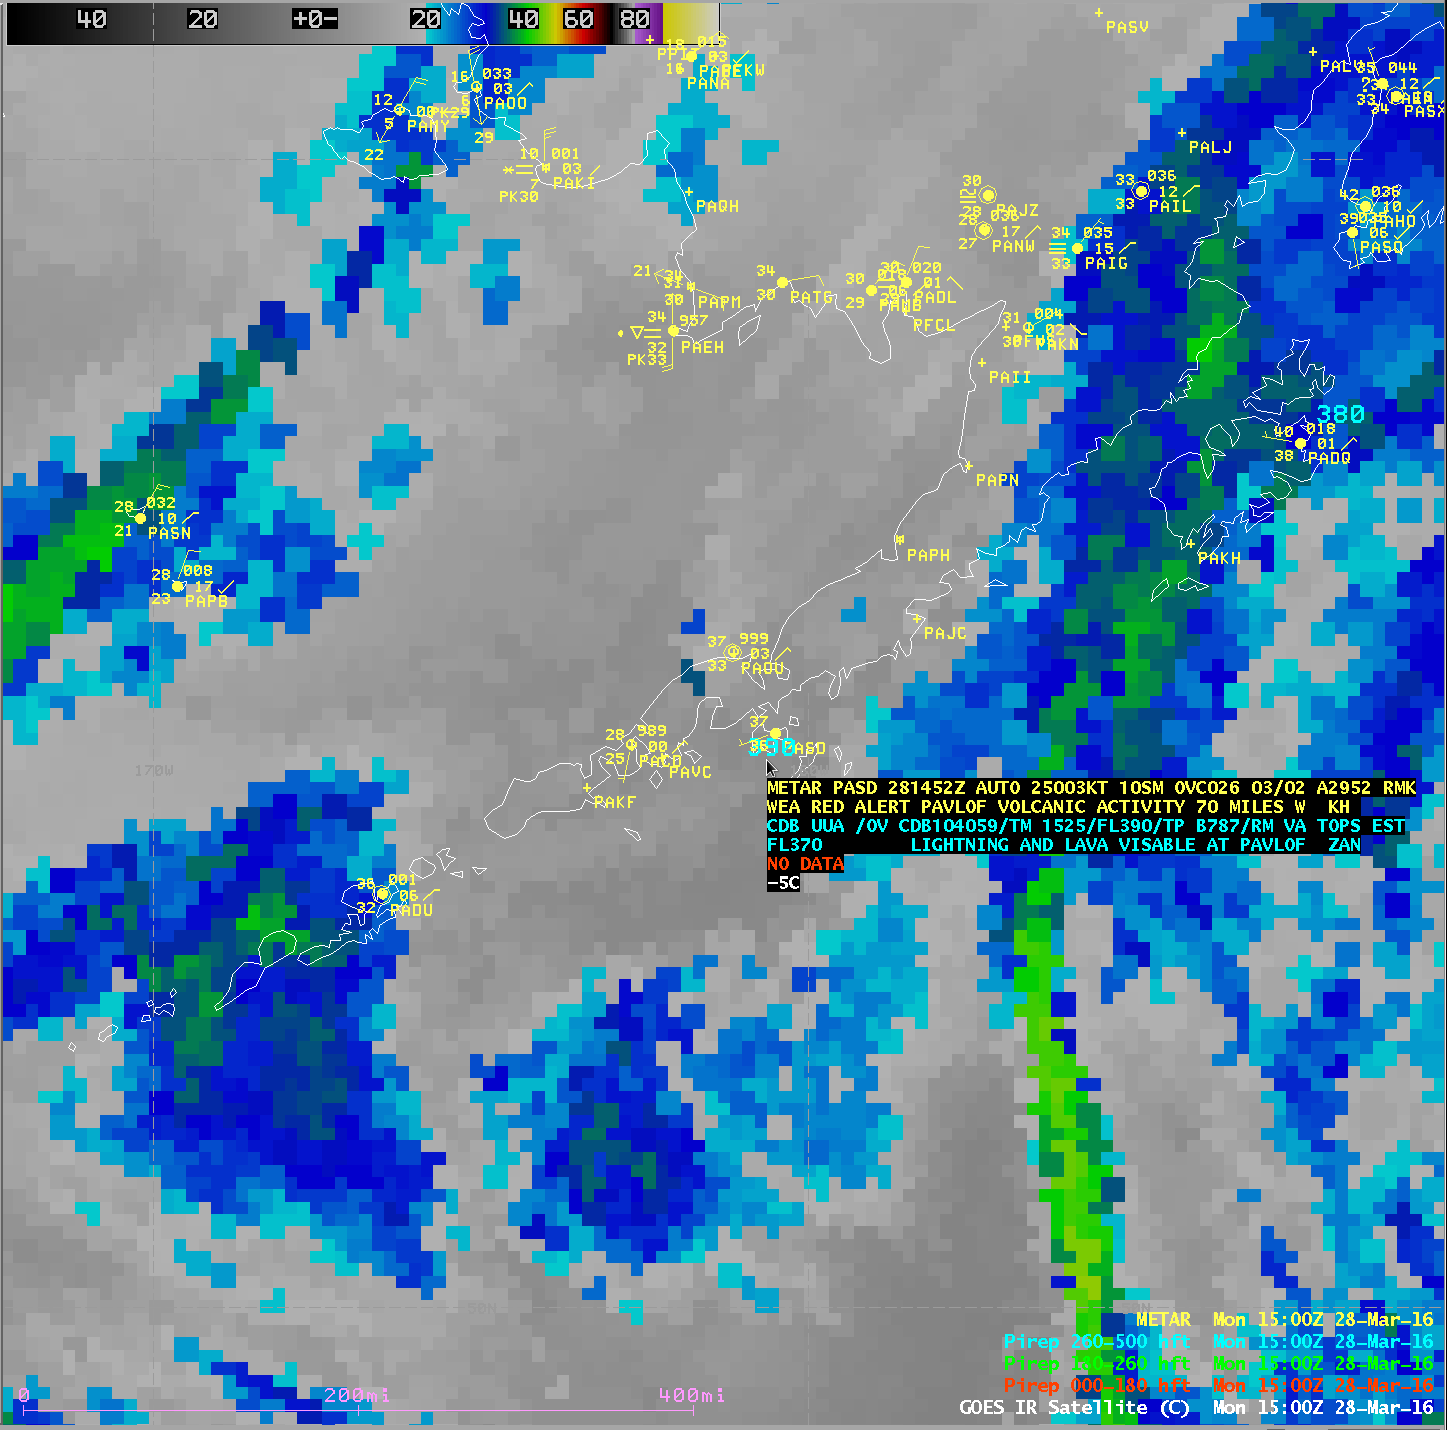 GOES-15 Infrared Window (10.7 um), with METAR surface reports and Pilot reports [click to enlarge]